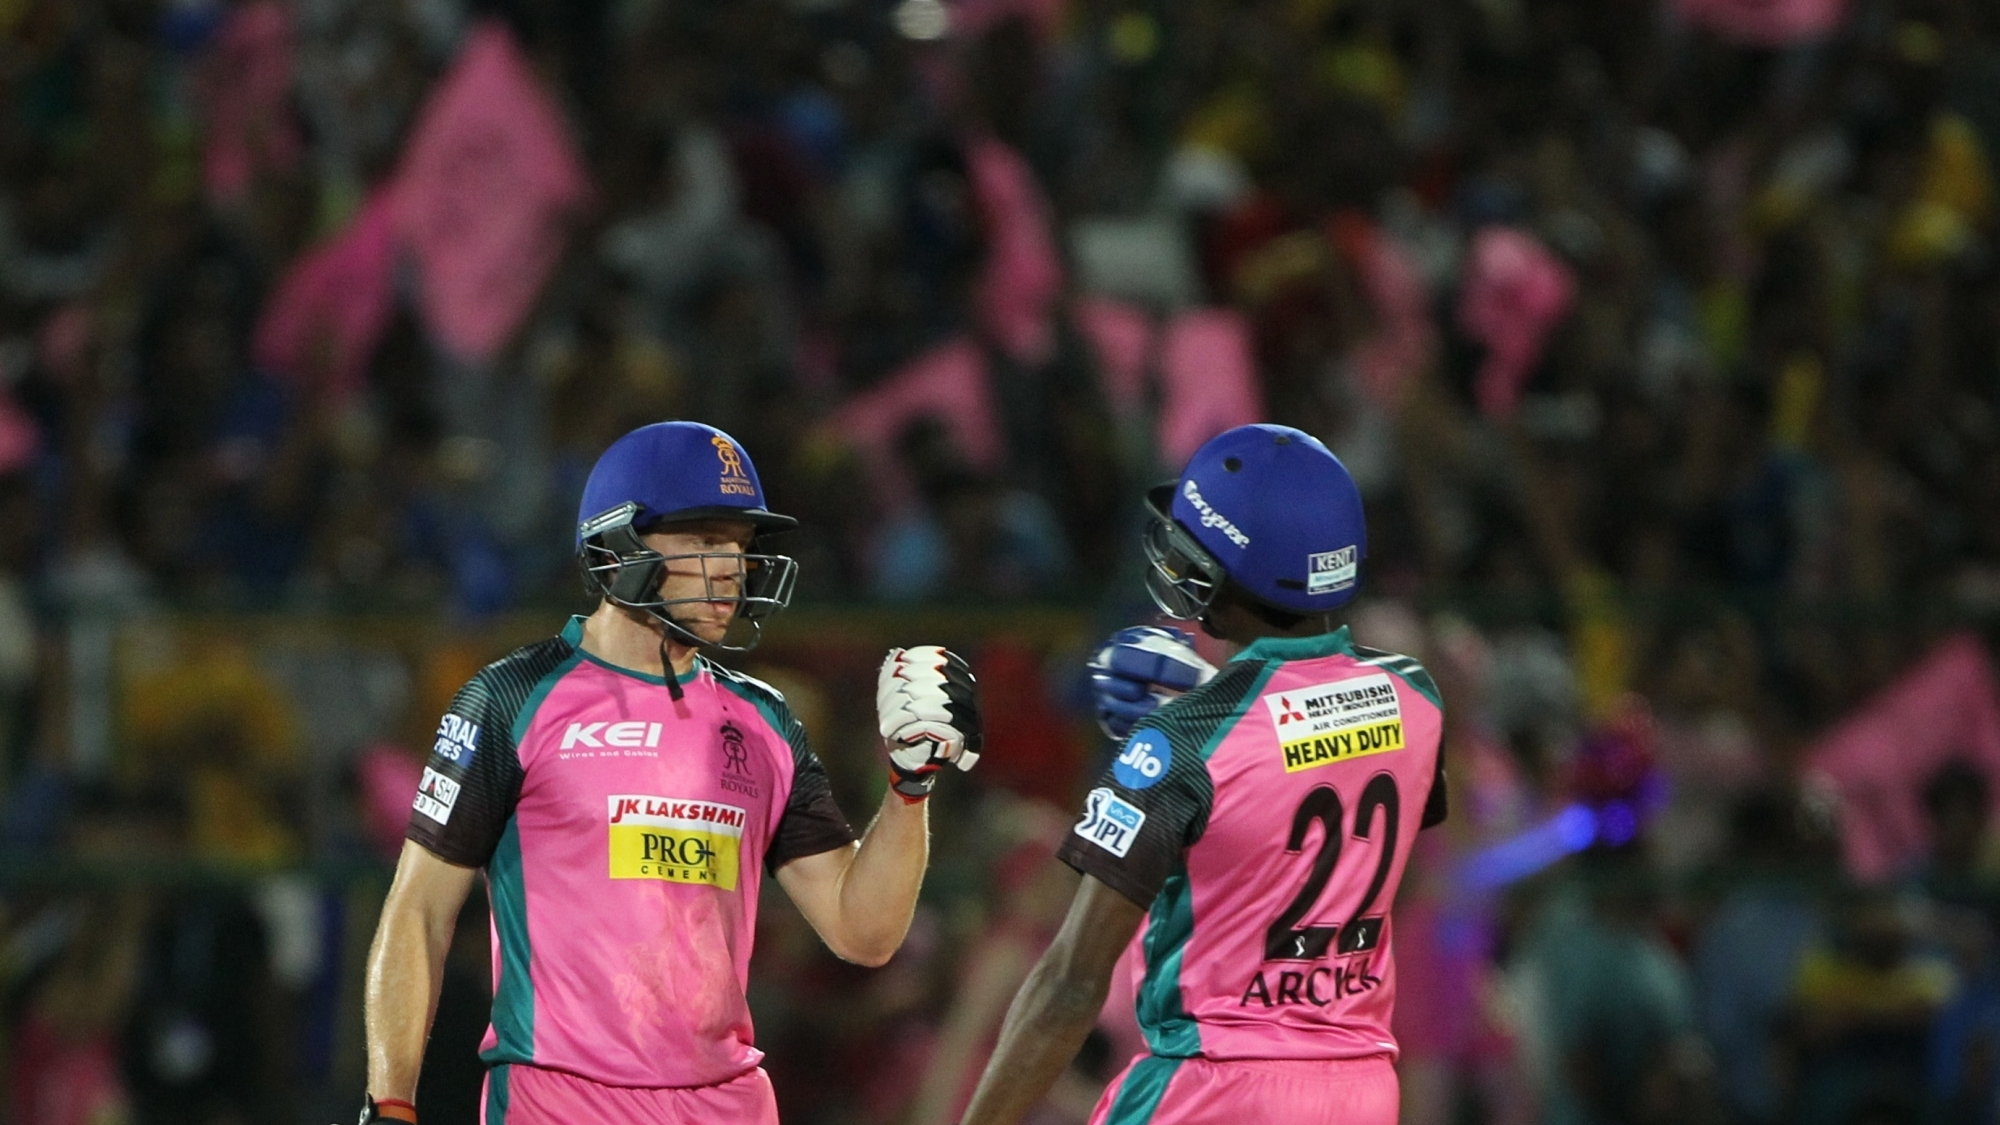 IPL 2018: Jos Buttler thanks Rajasthan Royals family for his wonderful stay